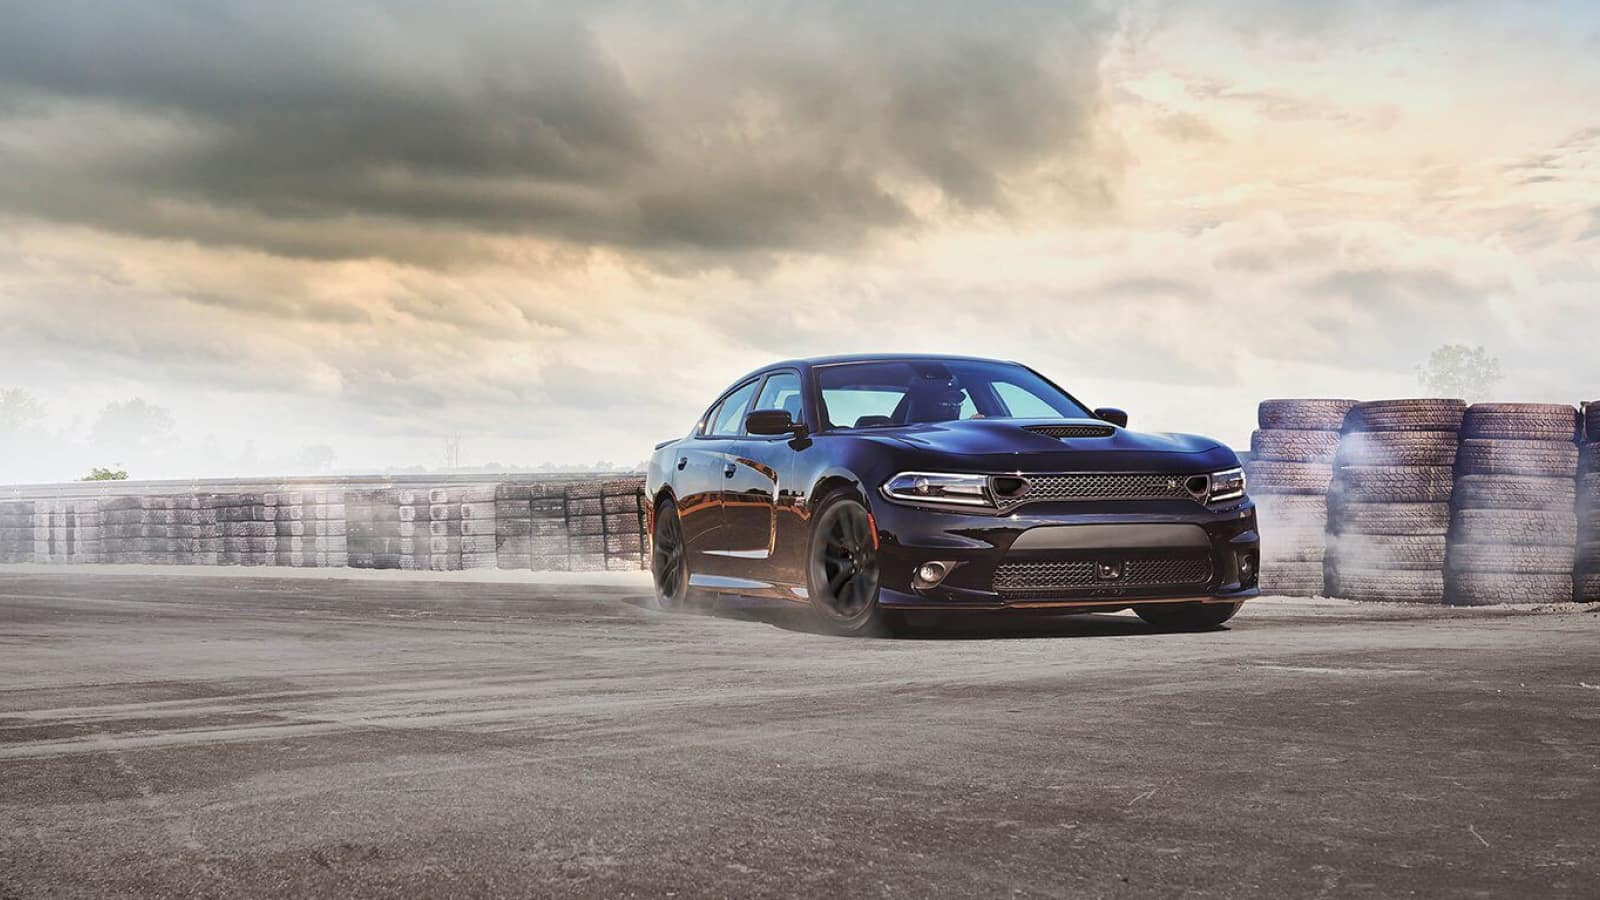 The powerful 2020 Dodge Charger